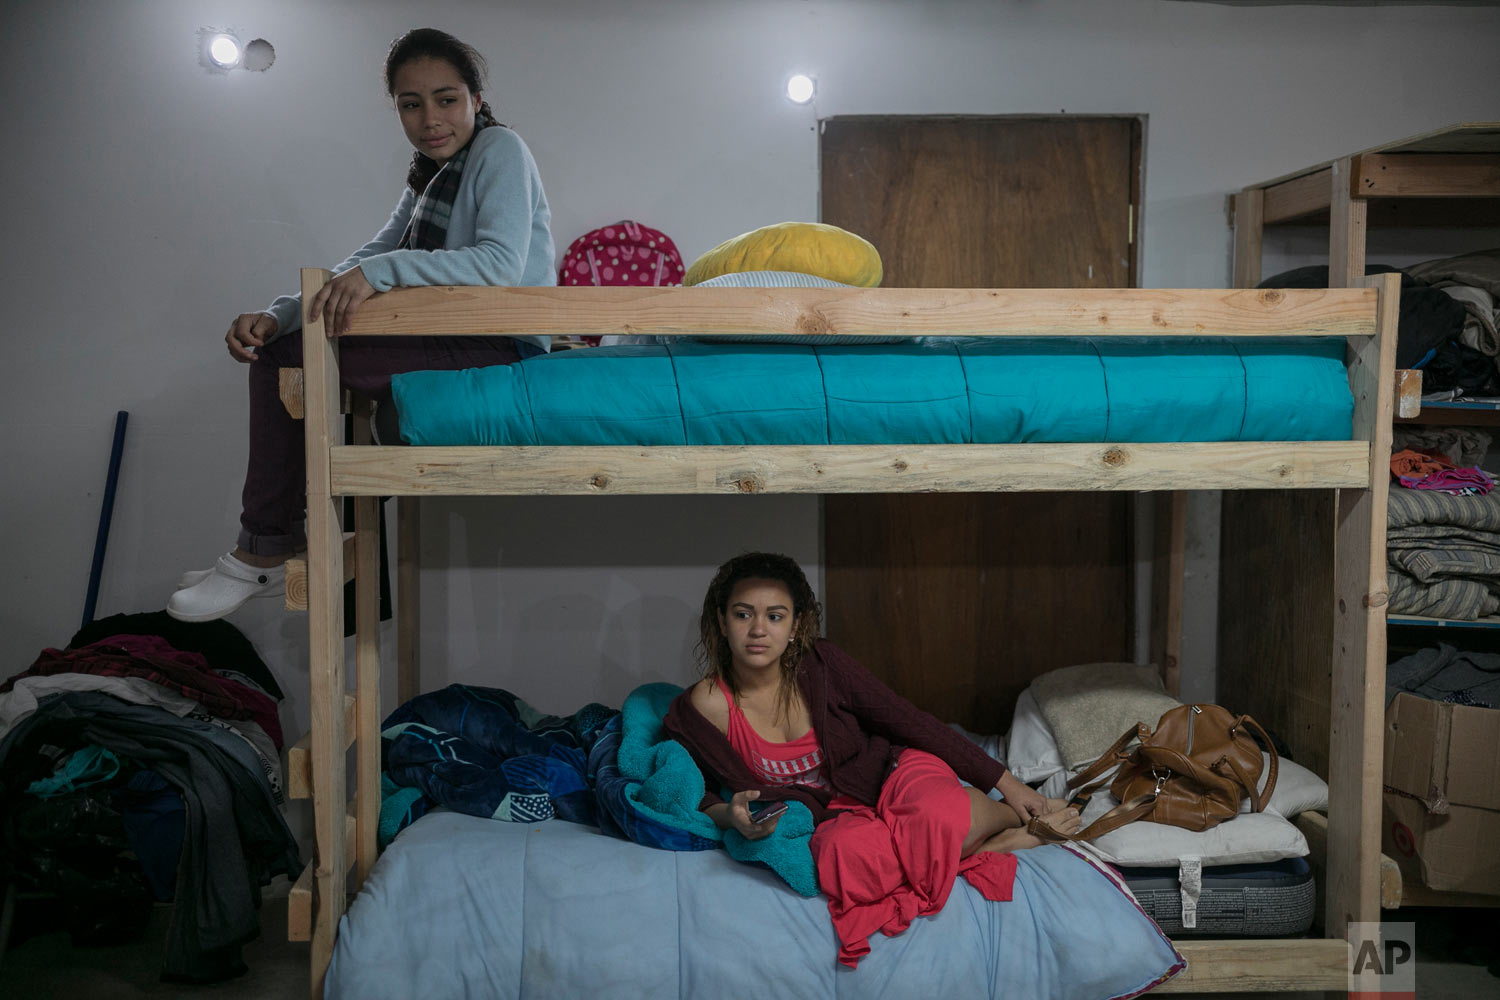 EL Salvador migrant Xiomara, 13, sits atop the bunk bed she shares with 18-year-old Valeria Ramos of Honduras, at the Agape World Mission shelter in Tijuana, Mexico, Feb. 4, 2019. (AP Photo/Emilio Espejel)